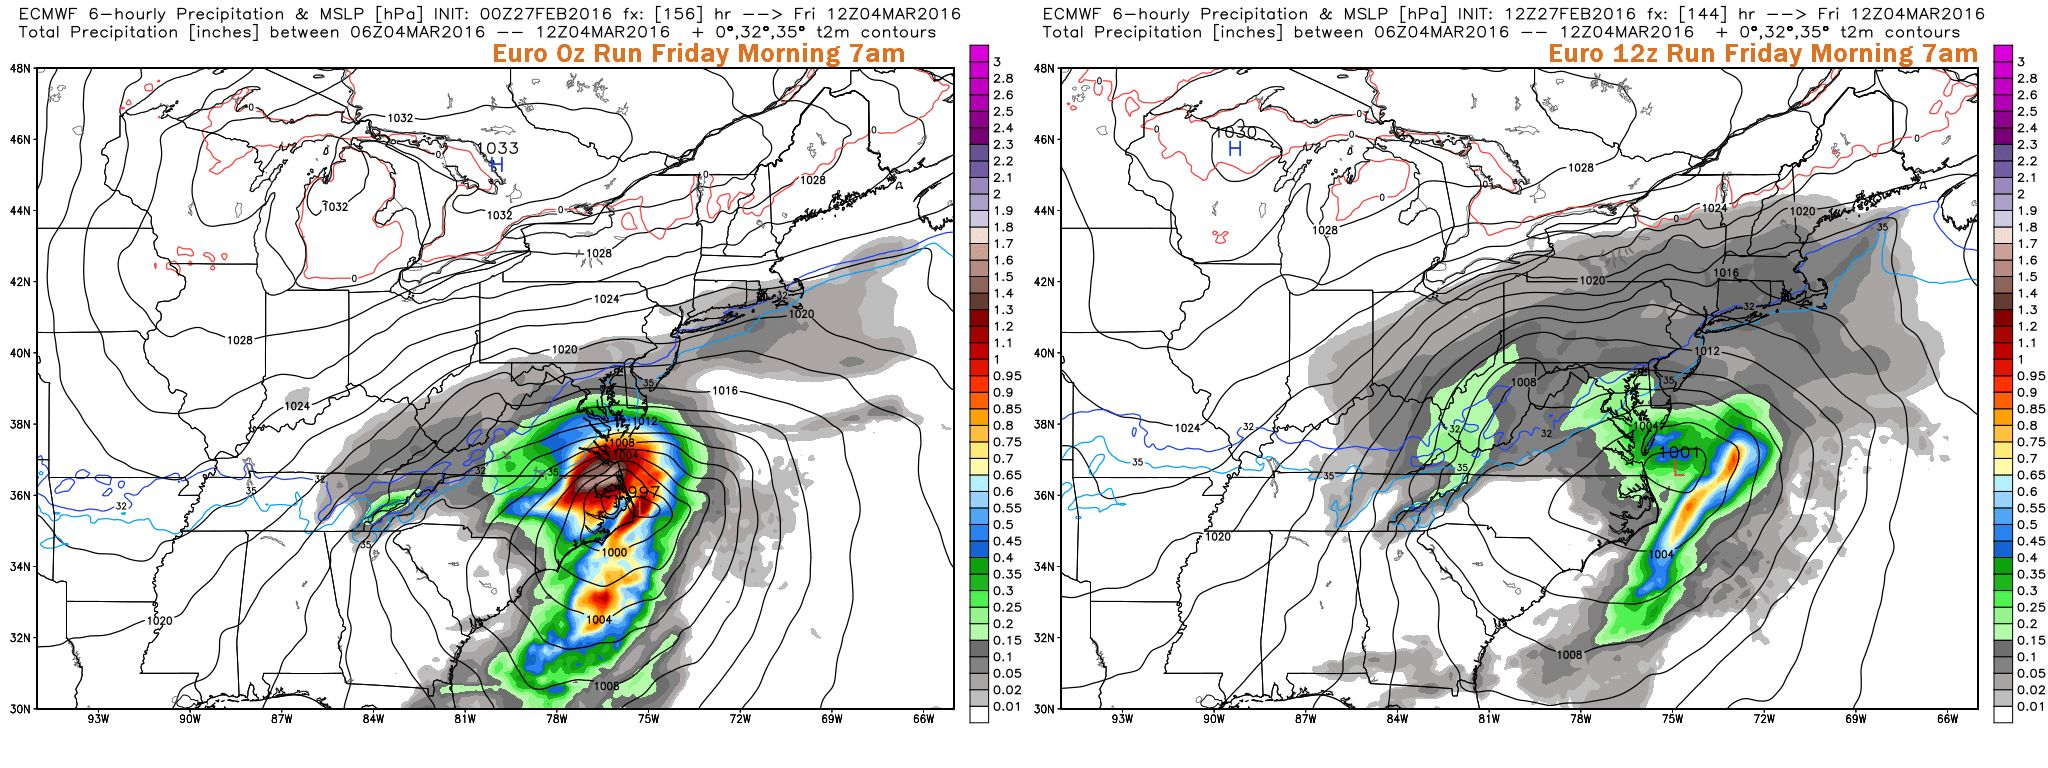 Comparison of last two ECMWF Model Runs for Friday Morning at 7am. Image Courtesy: WeatherBell LLC.